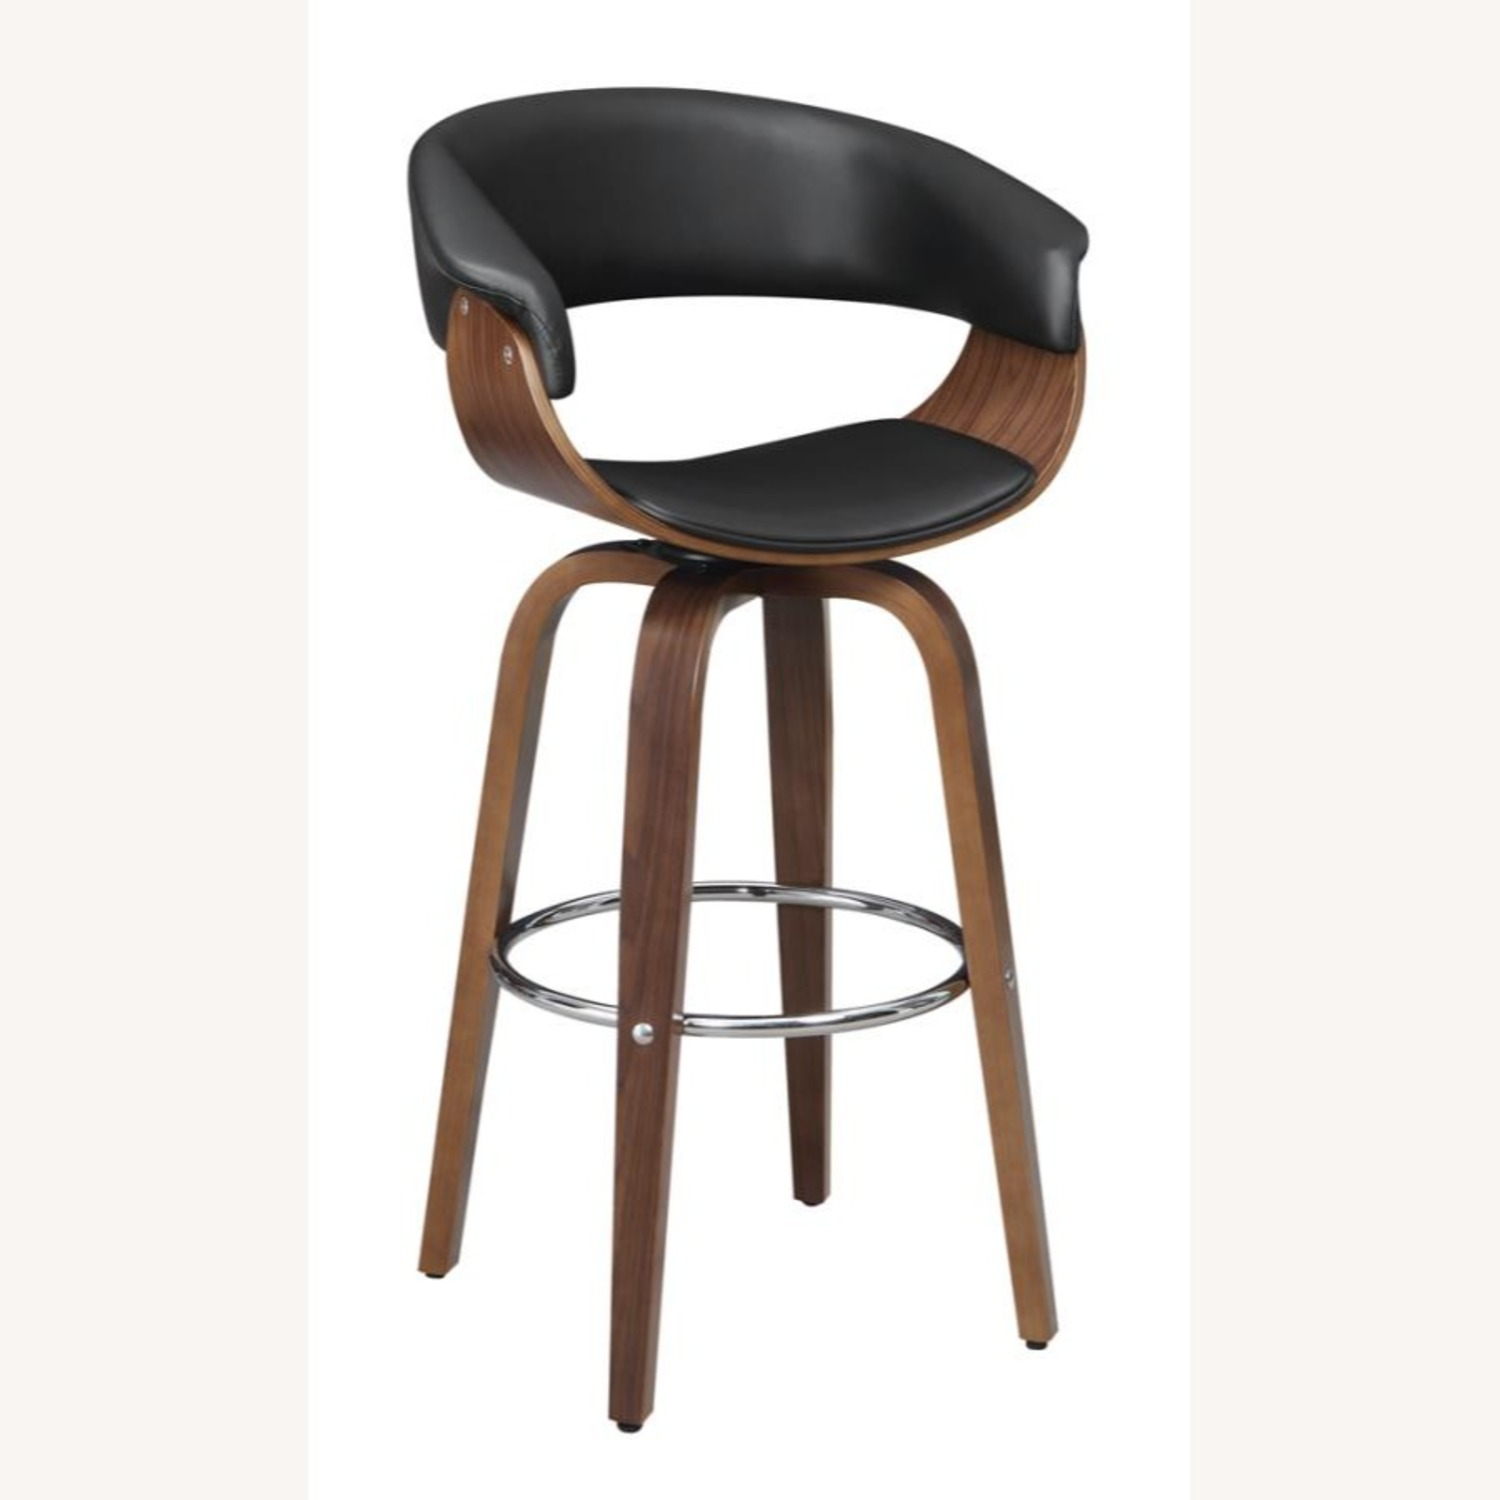 Swivel Bar Stool In Black Faux Leather Upholstery - image-0